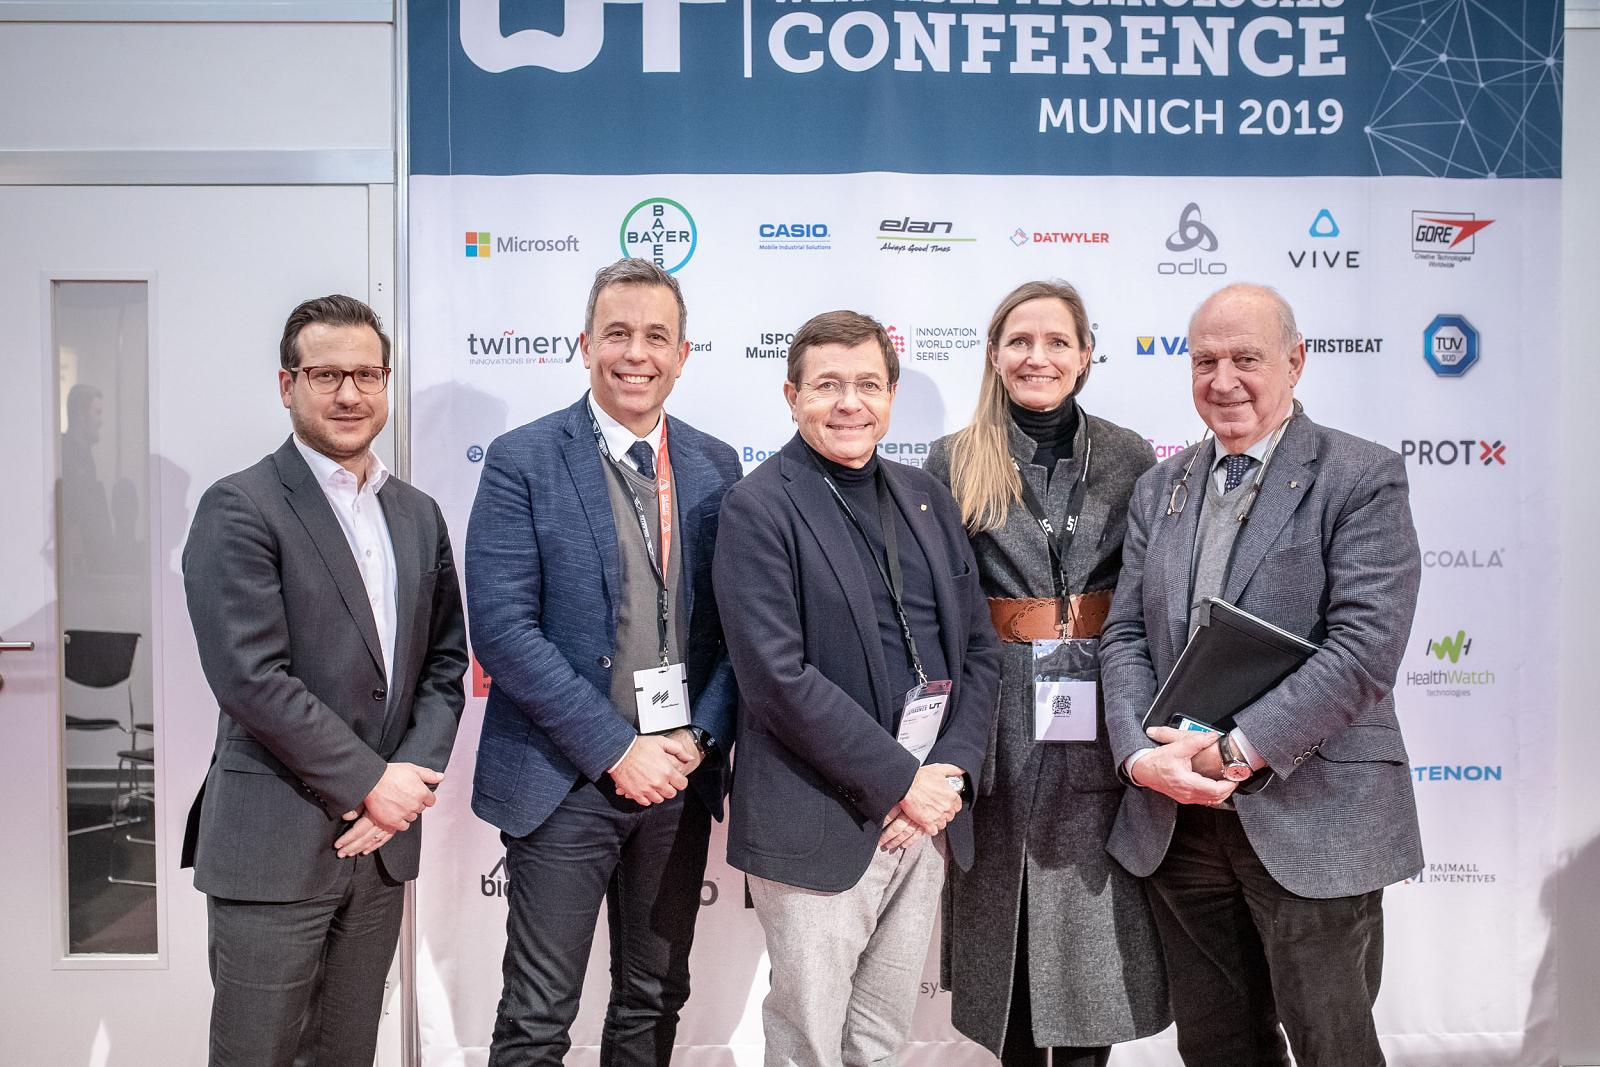 THE INTERNATIONAL FEDERATION OF SPORTS MEDICINE AT THE WEARABLE TECHNOLOGIES CONFERENCE 2019 IN MUNICH